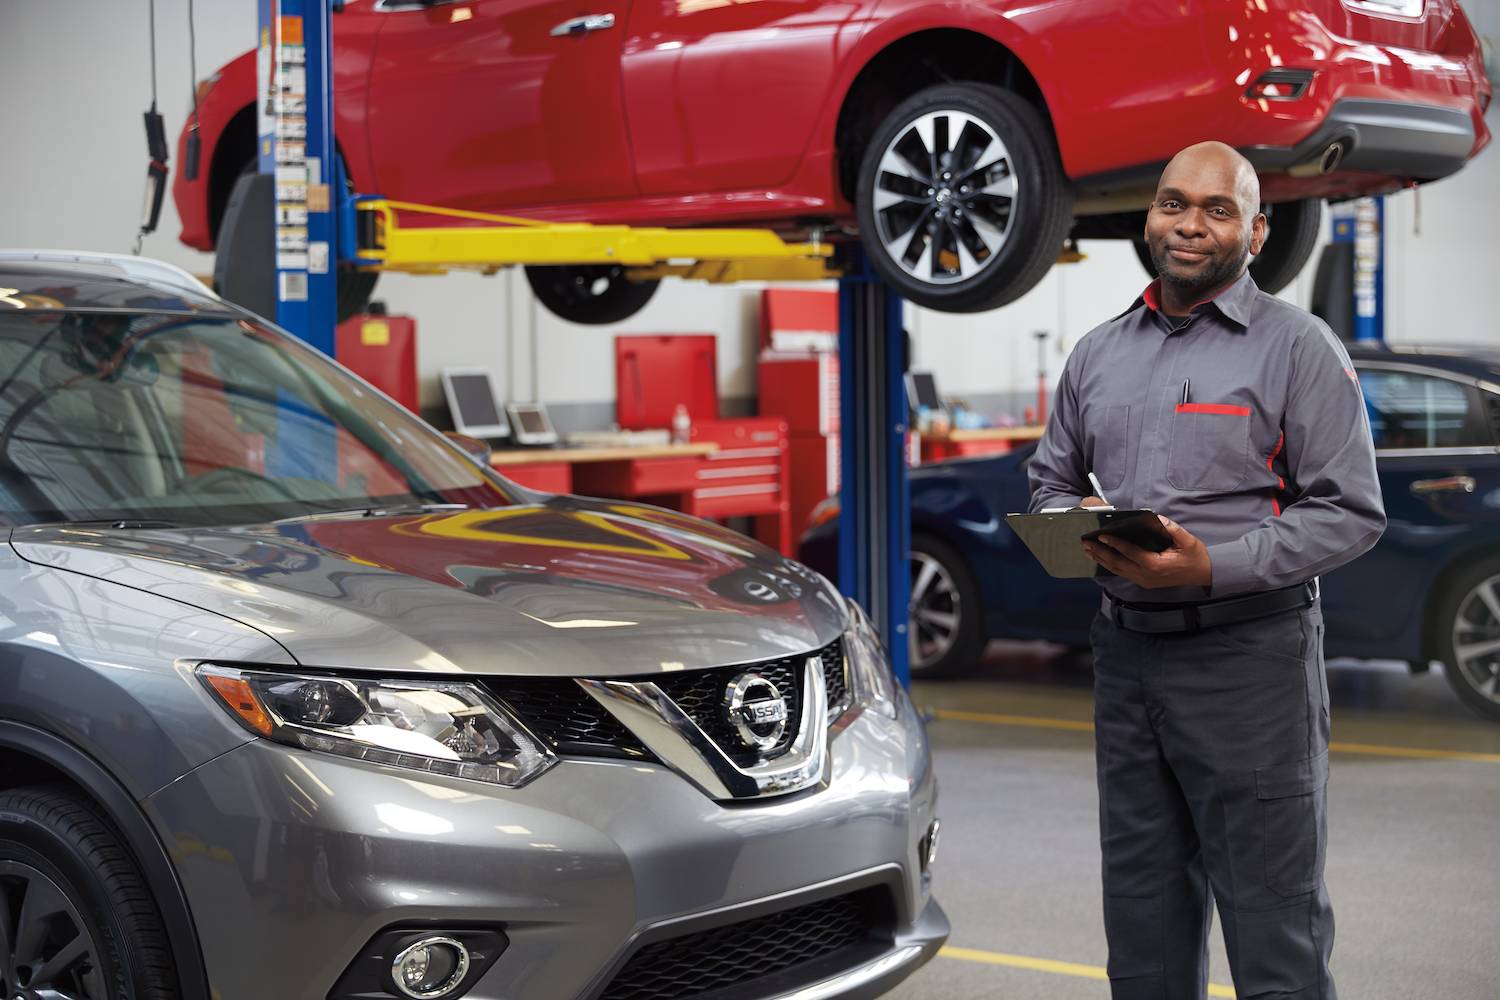 Oil Changes at Nissan | Oil bottle